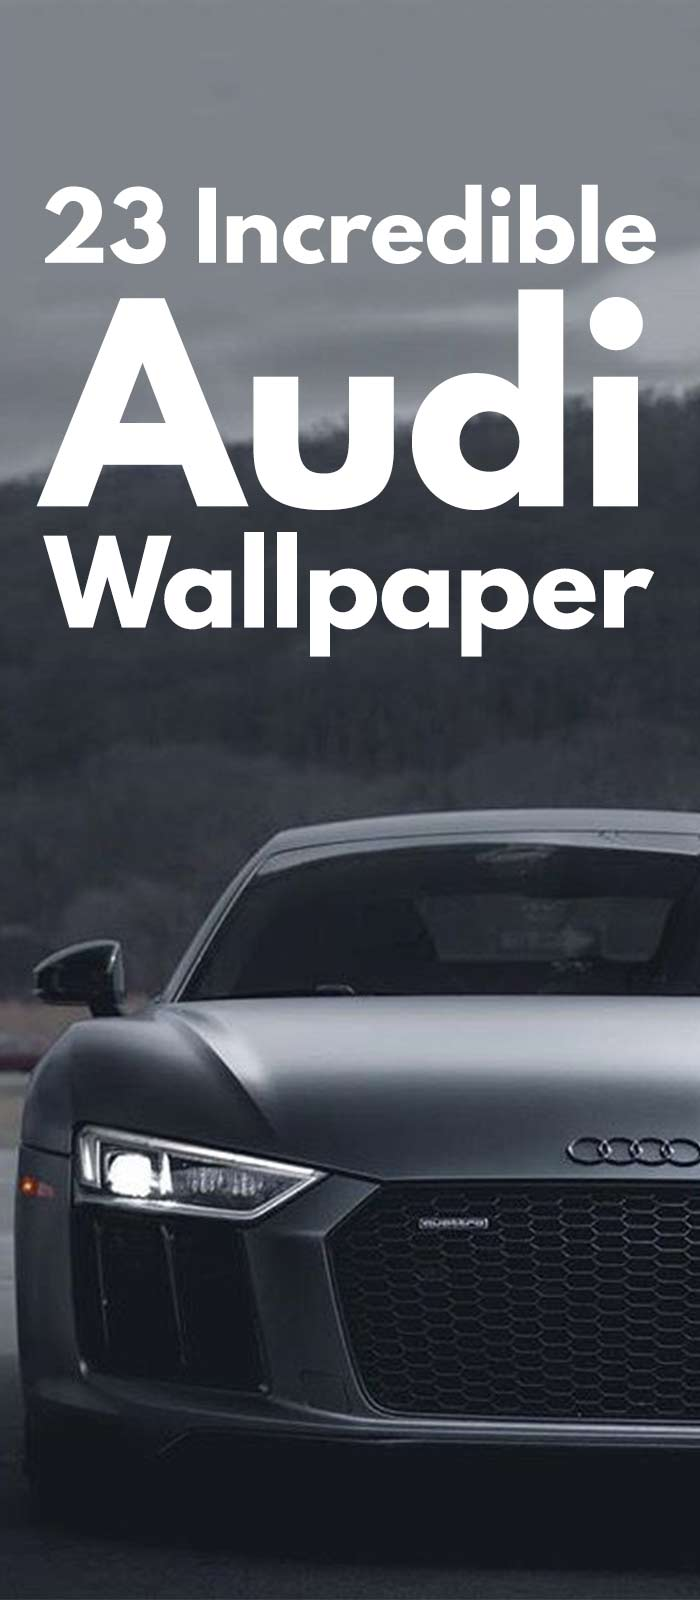 23 Incredible Audi Cars Wallpaper Images.